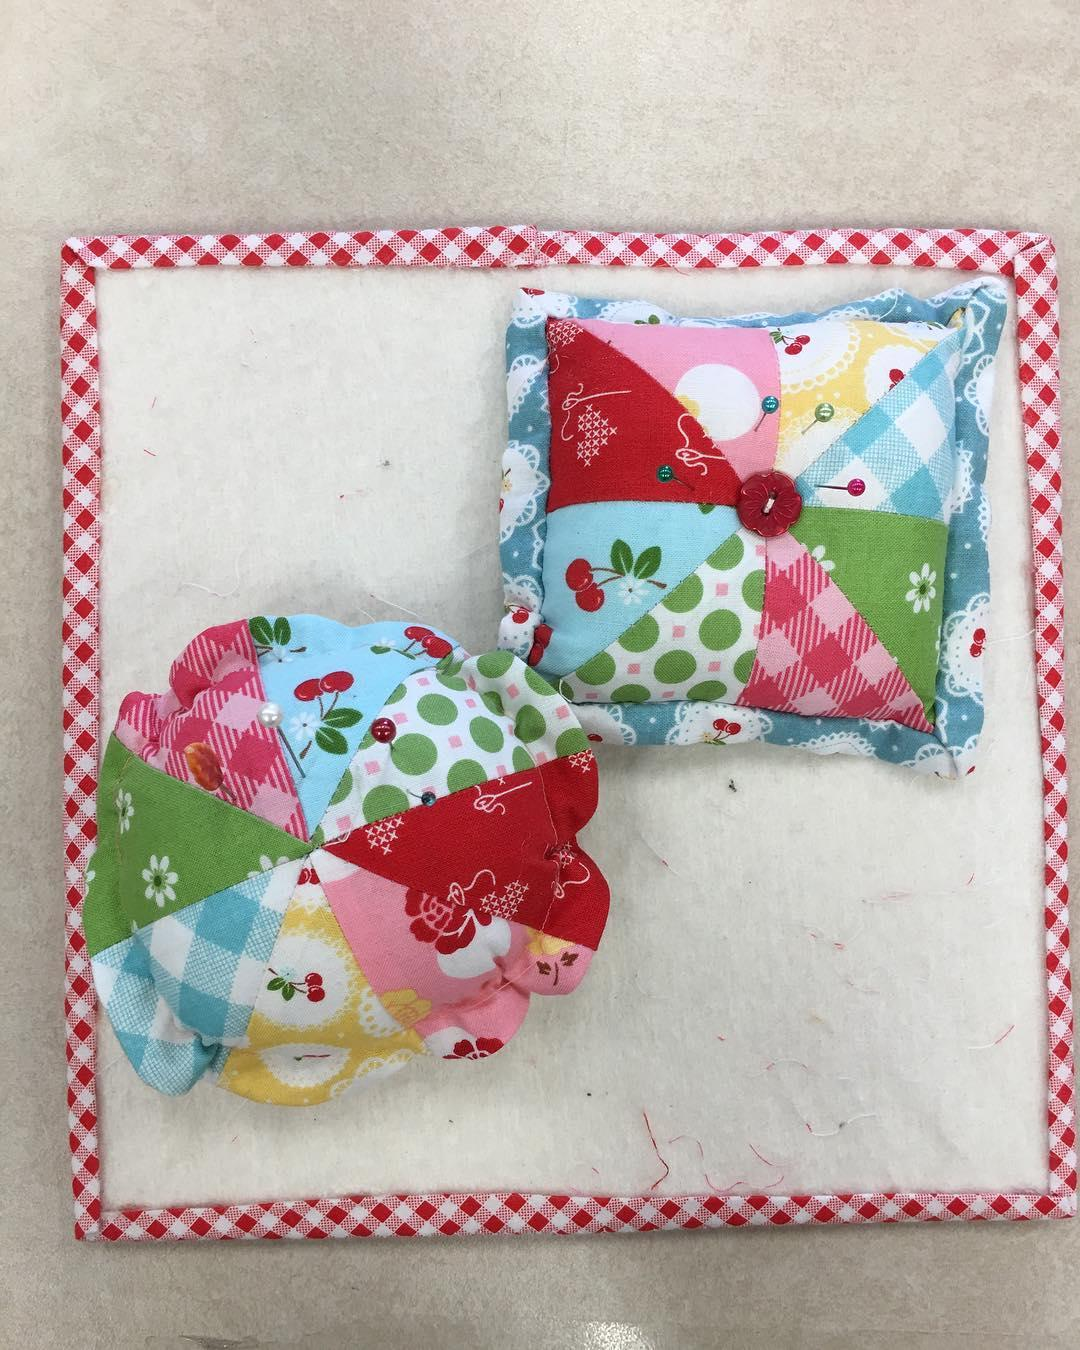 Regal Fabrics and Gifts image 13